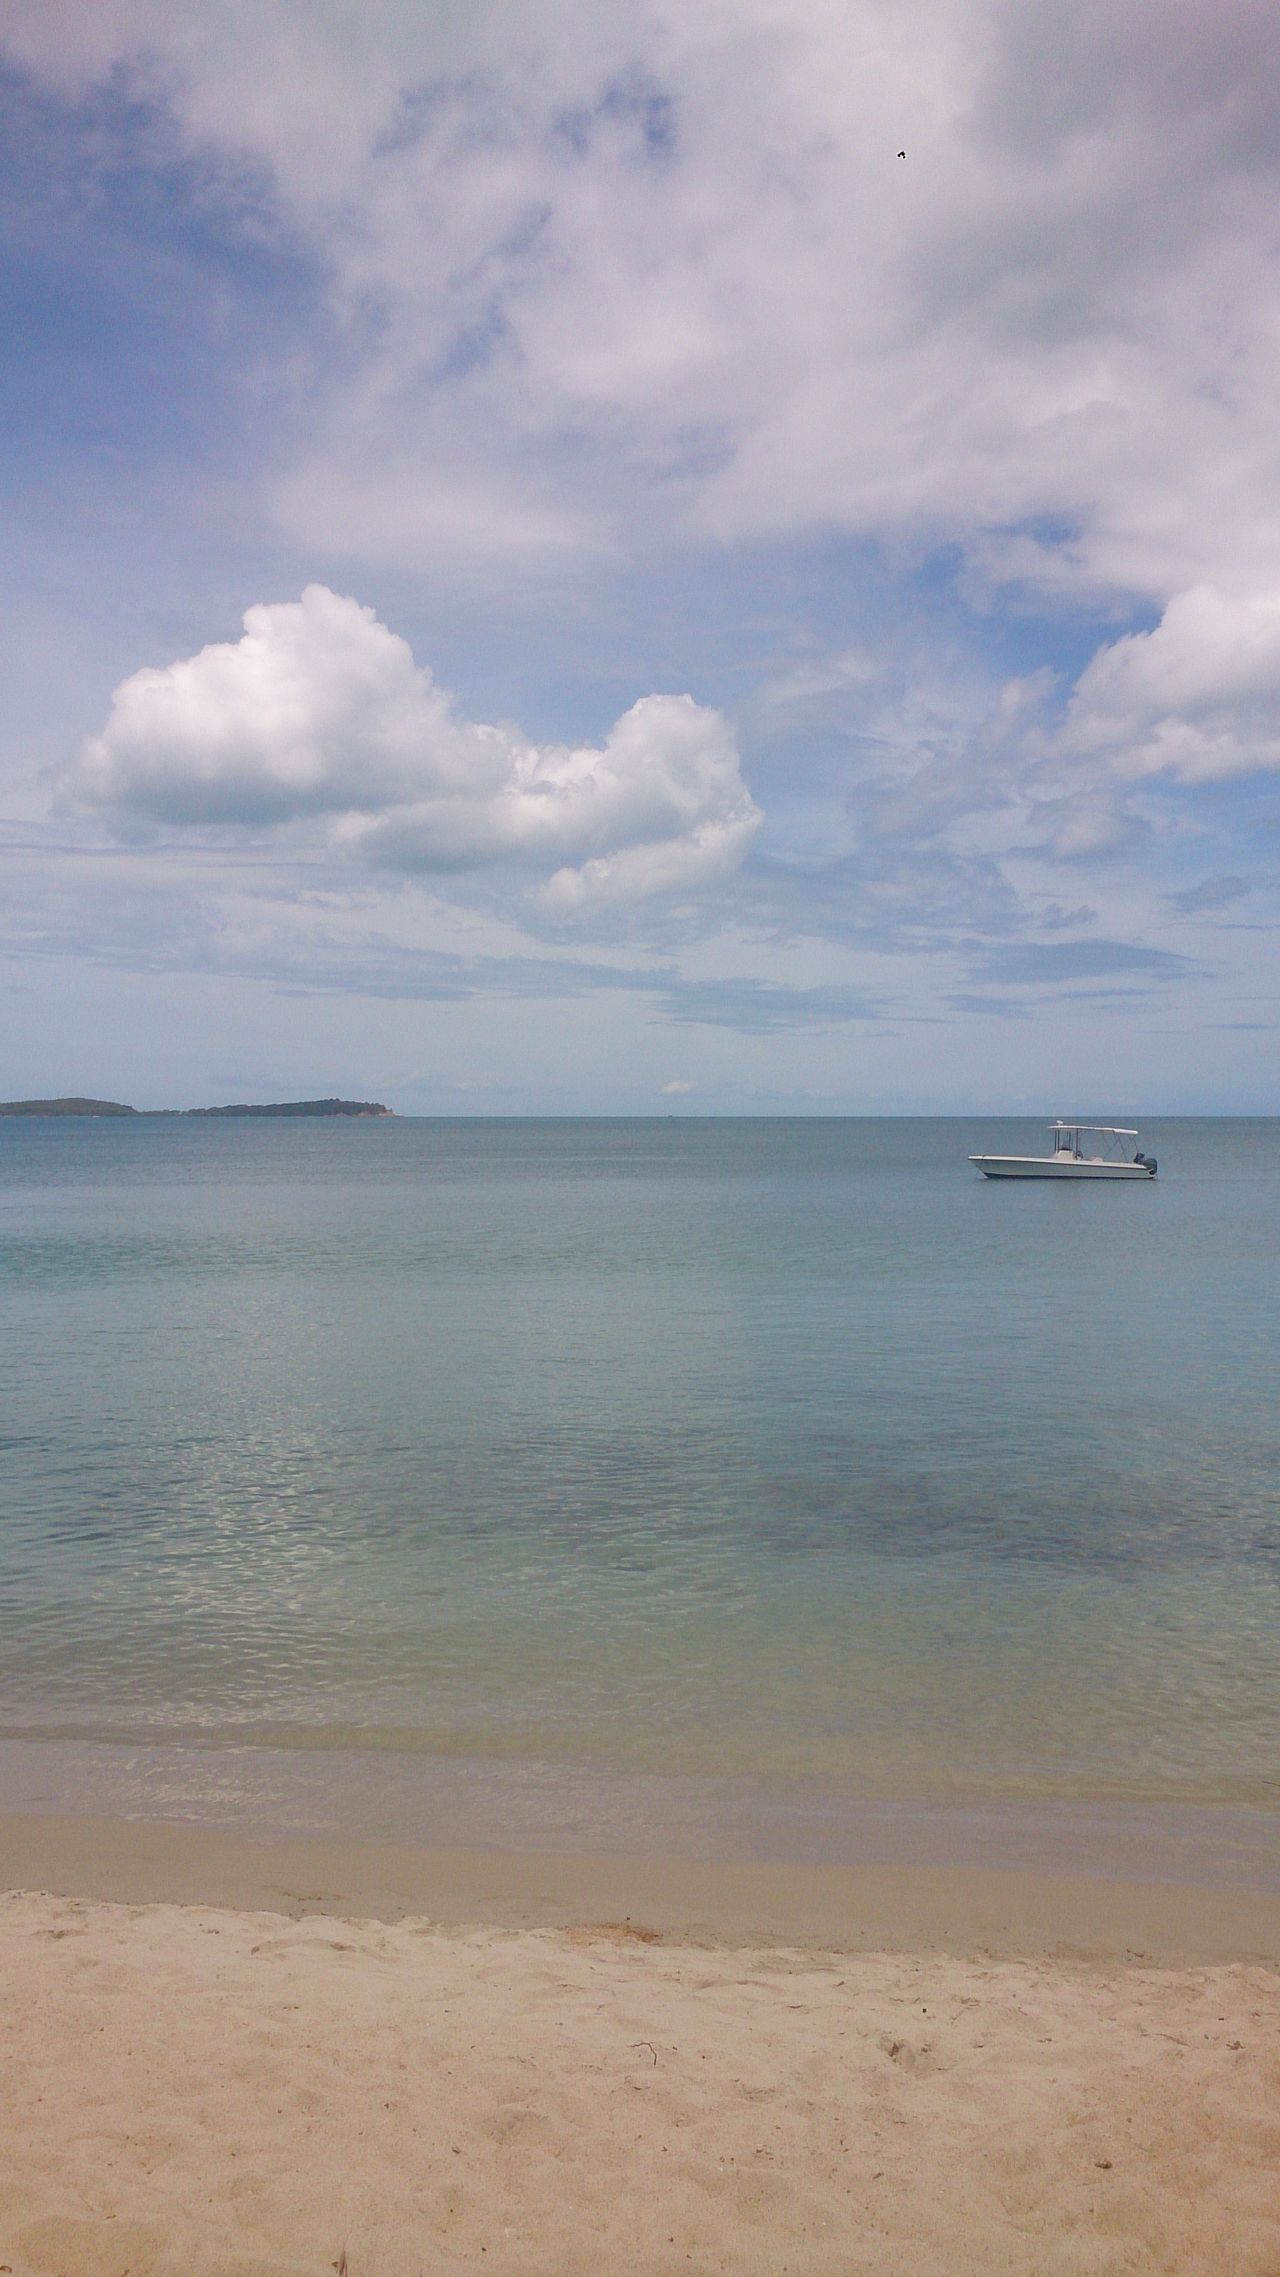 A moment in time. Relax Heaven Heaven On Earth Sea Beach Sand Nature No People Water Chill Chillaxing Chilling Sky Koi Samui Thailand